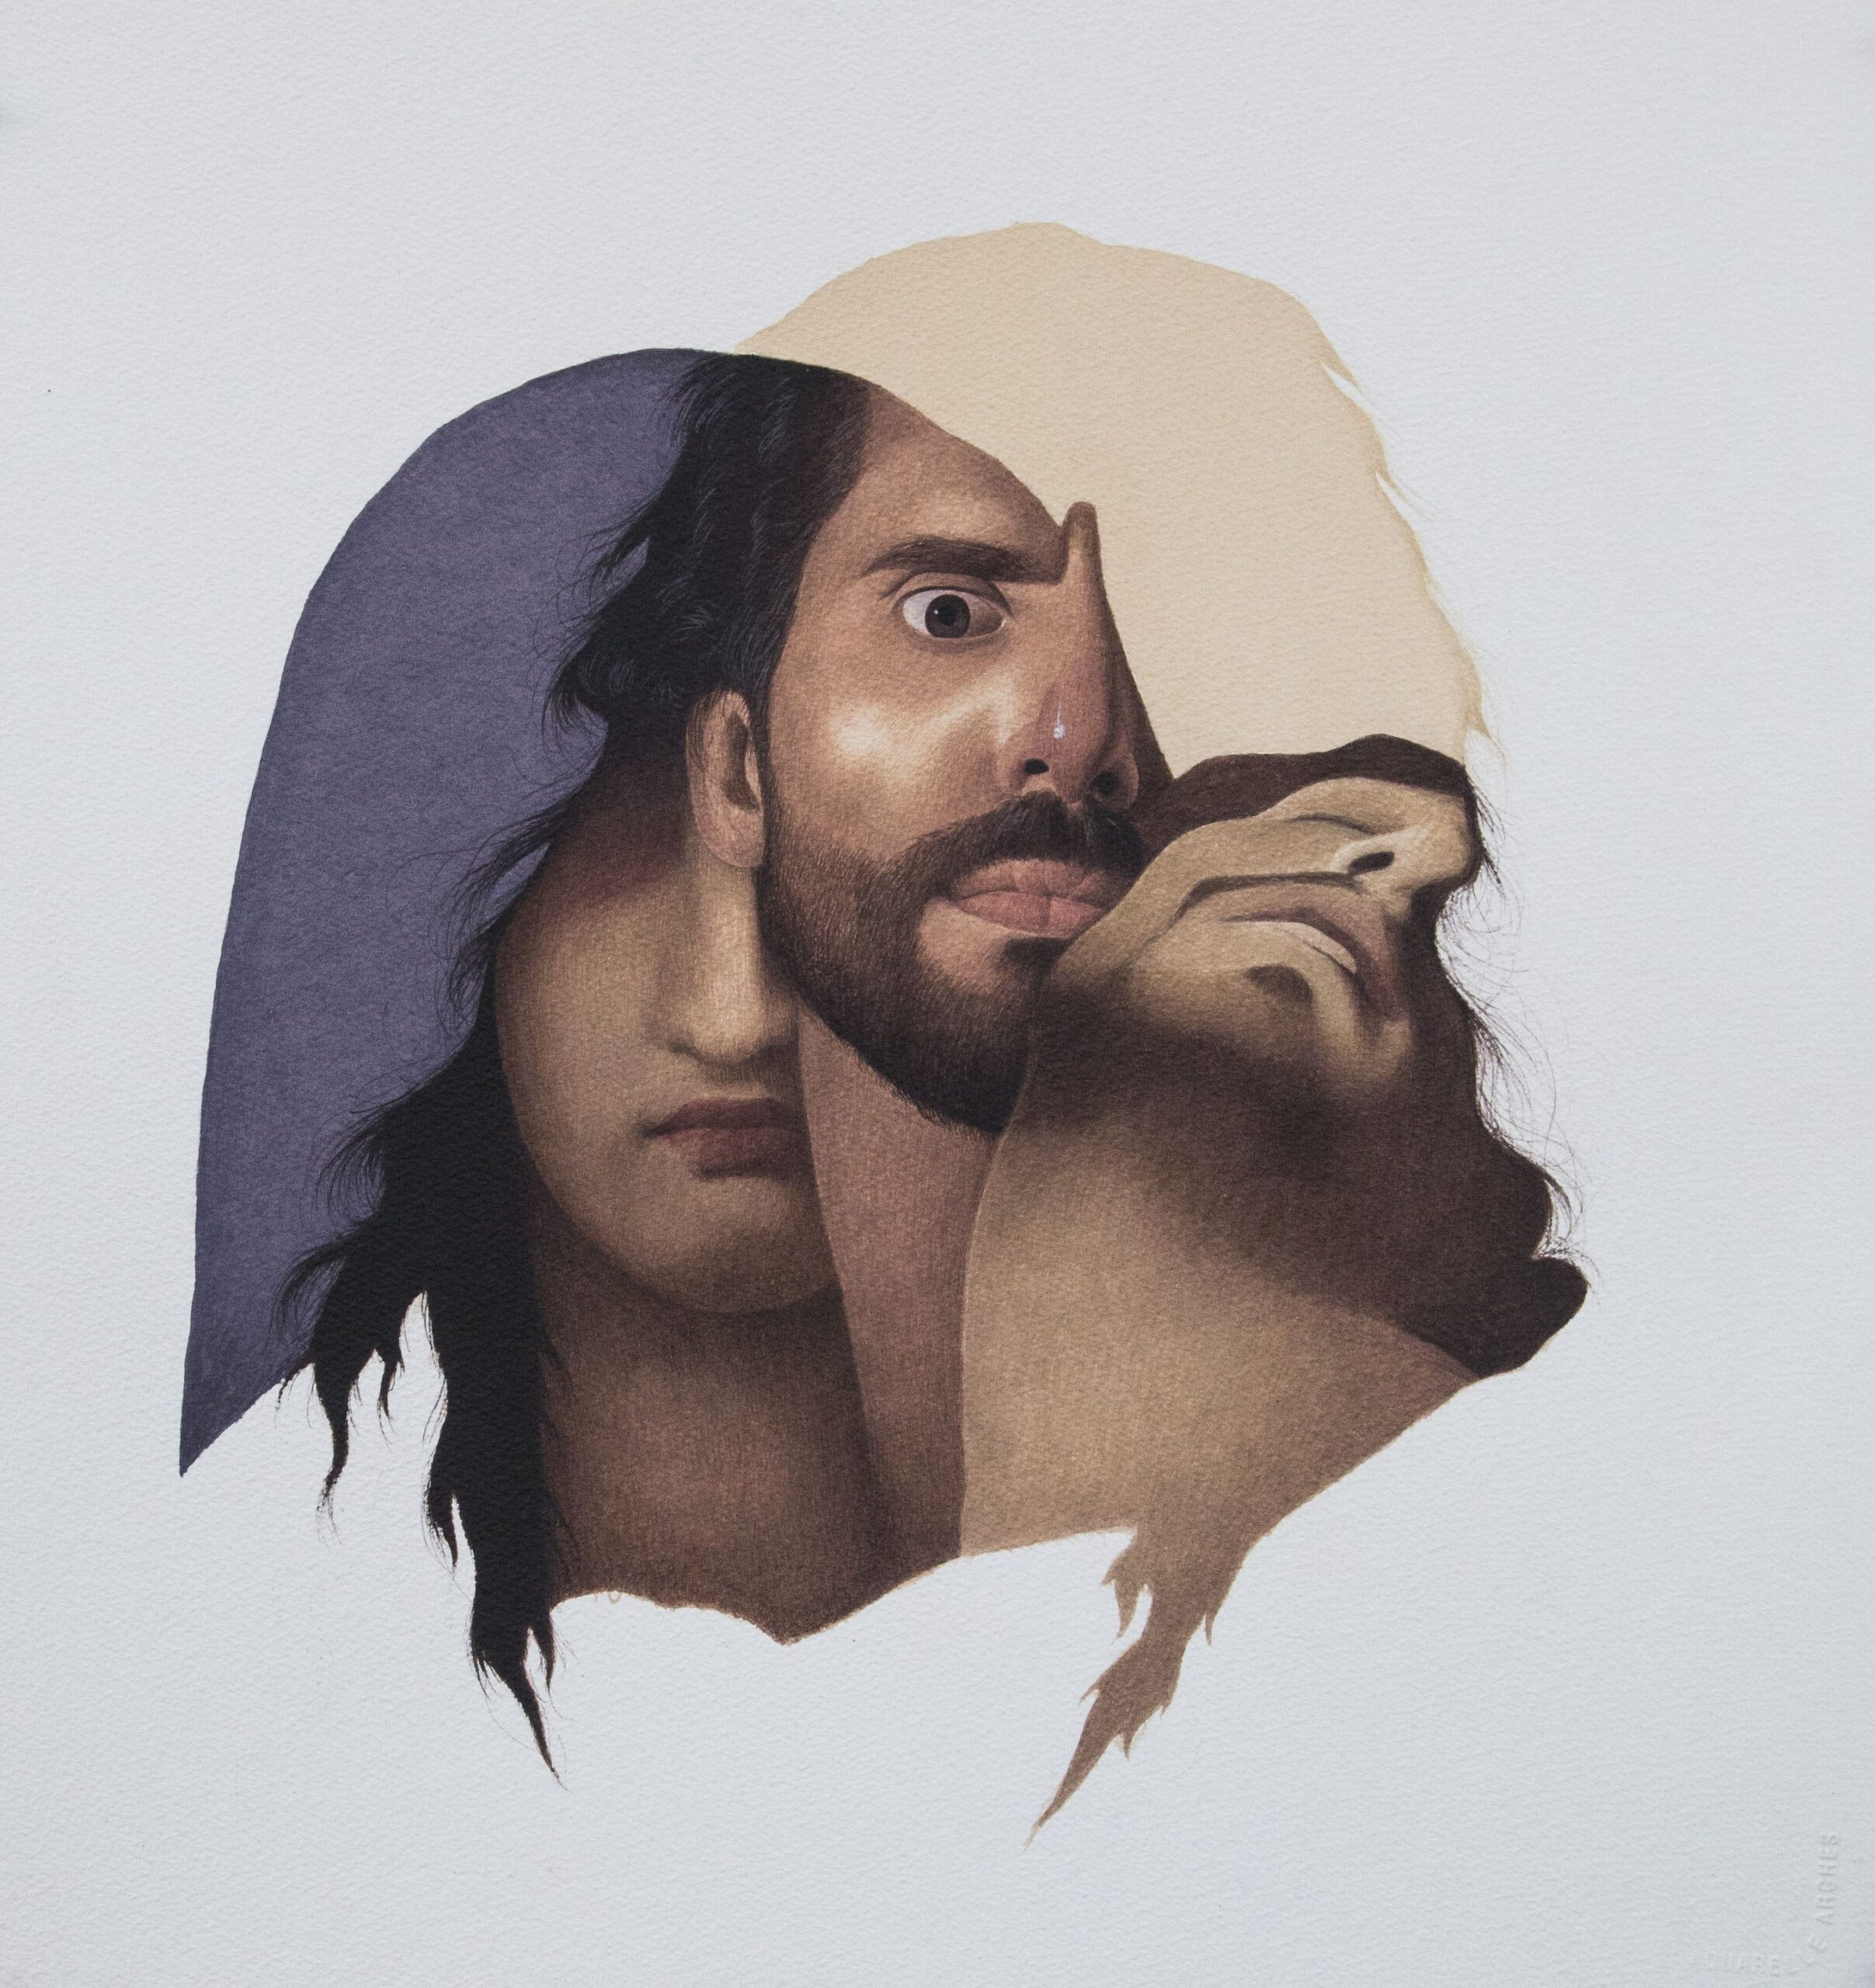 Title: Pieta<br></br>Medium: Opaque water colour on paper<br></br>Size: 18.5 x 19.5 inches